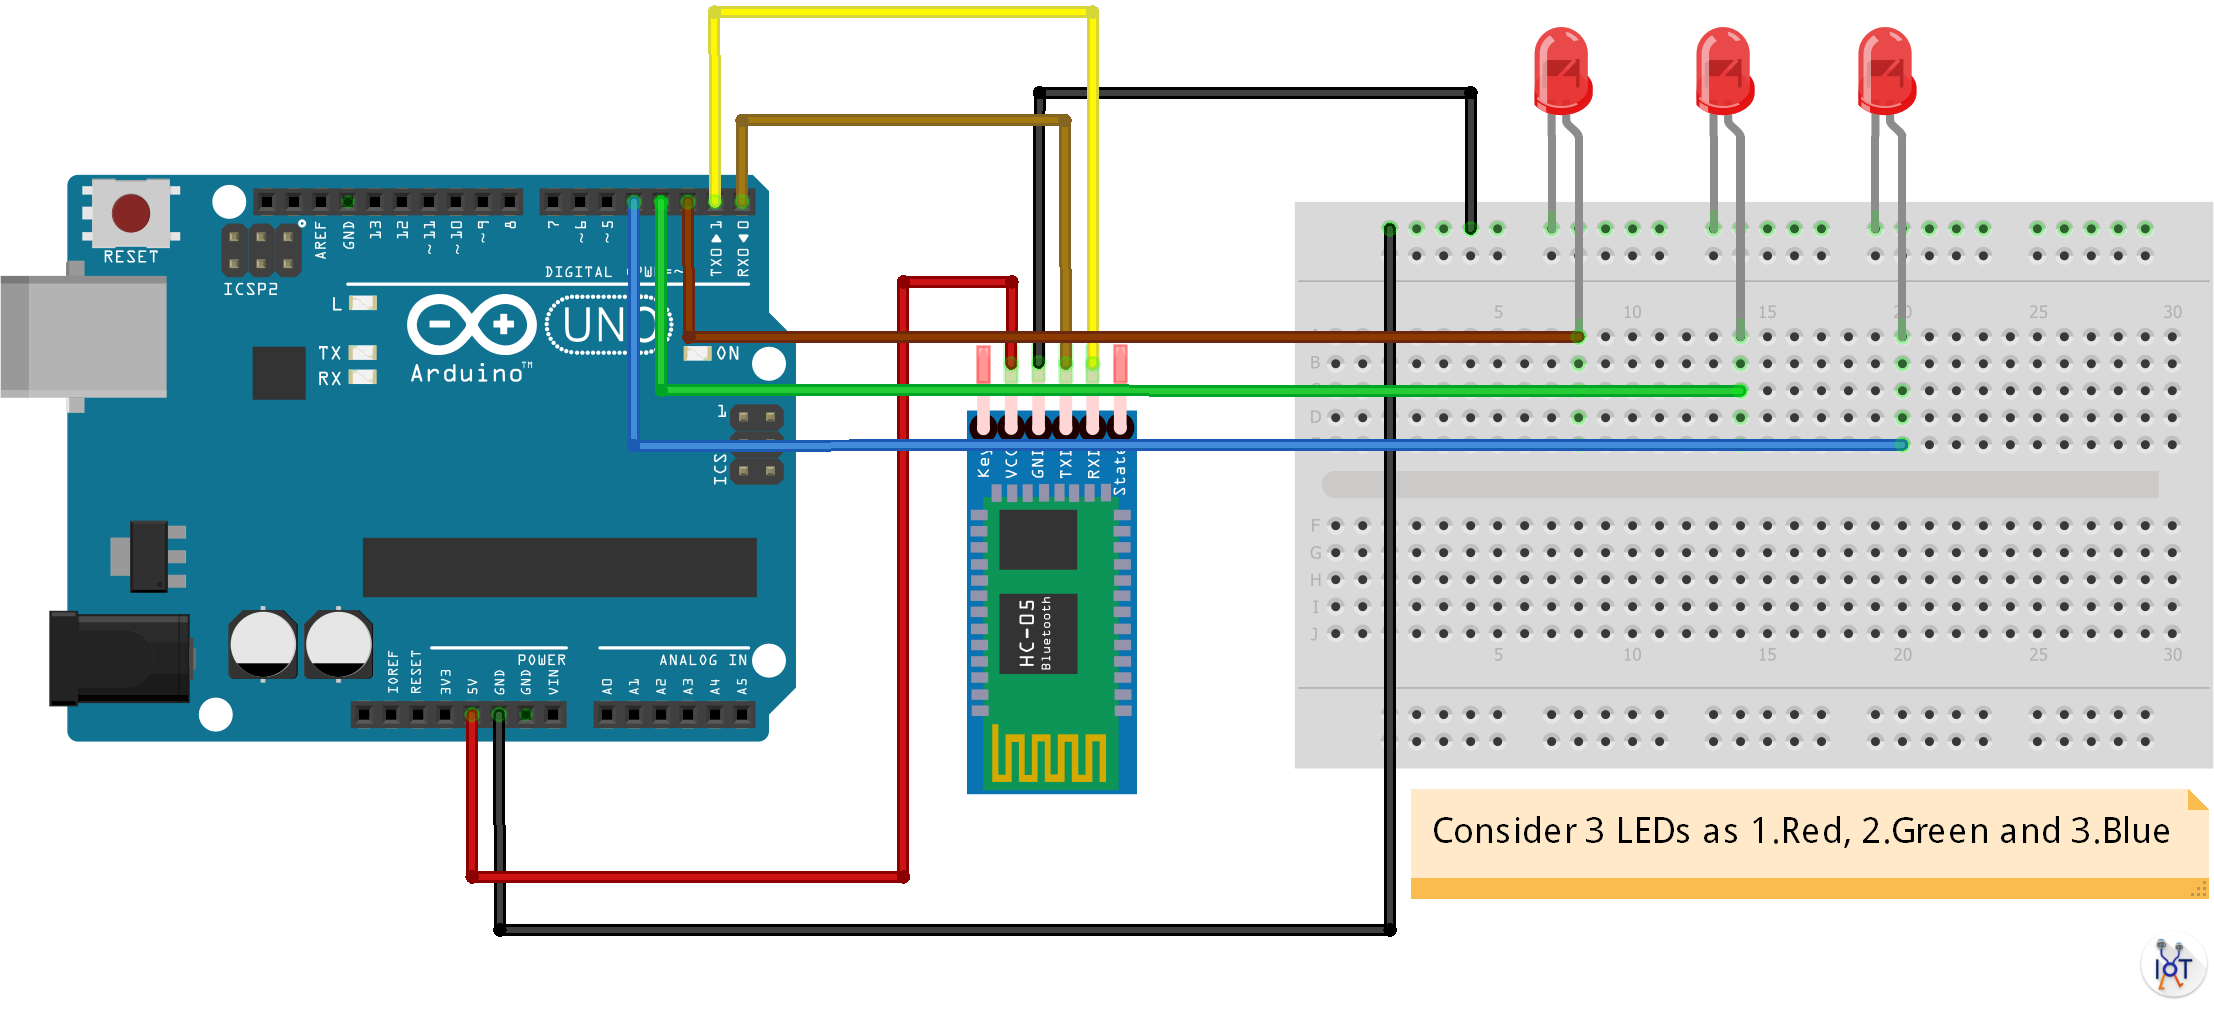 Controlling led using voice command  iotboys com a2wrardmf4